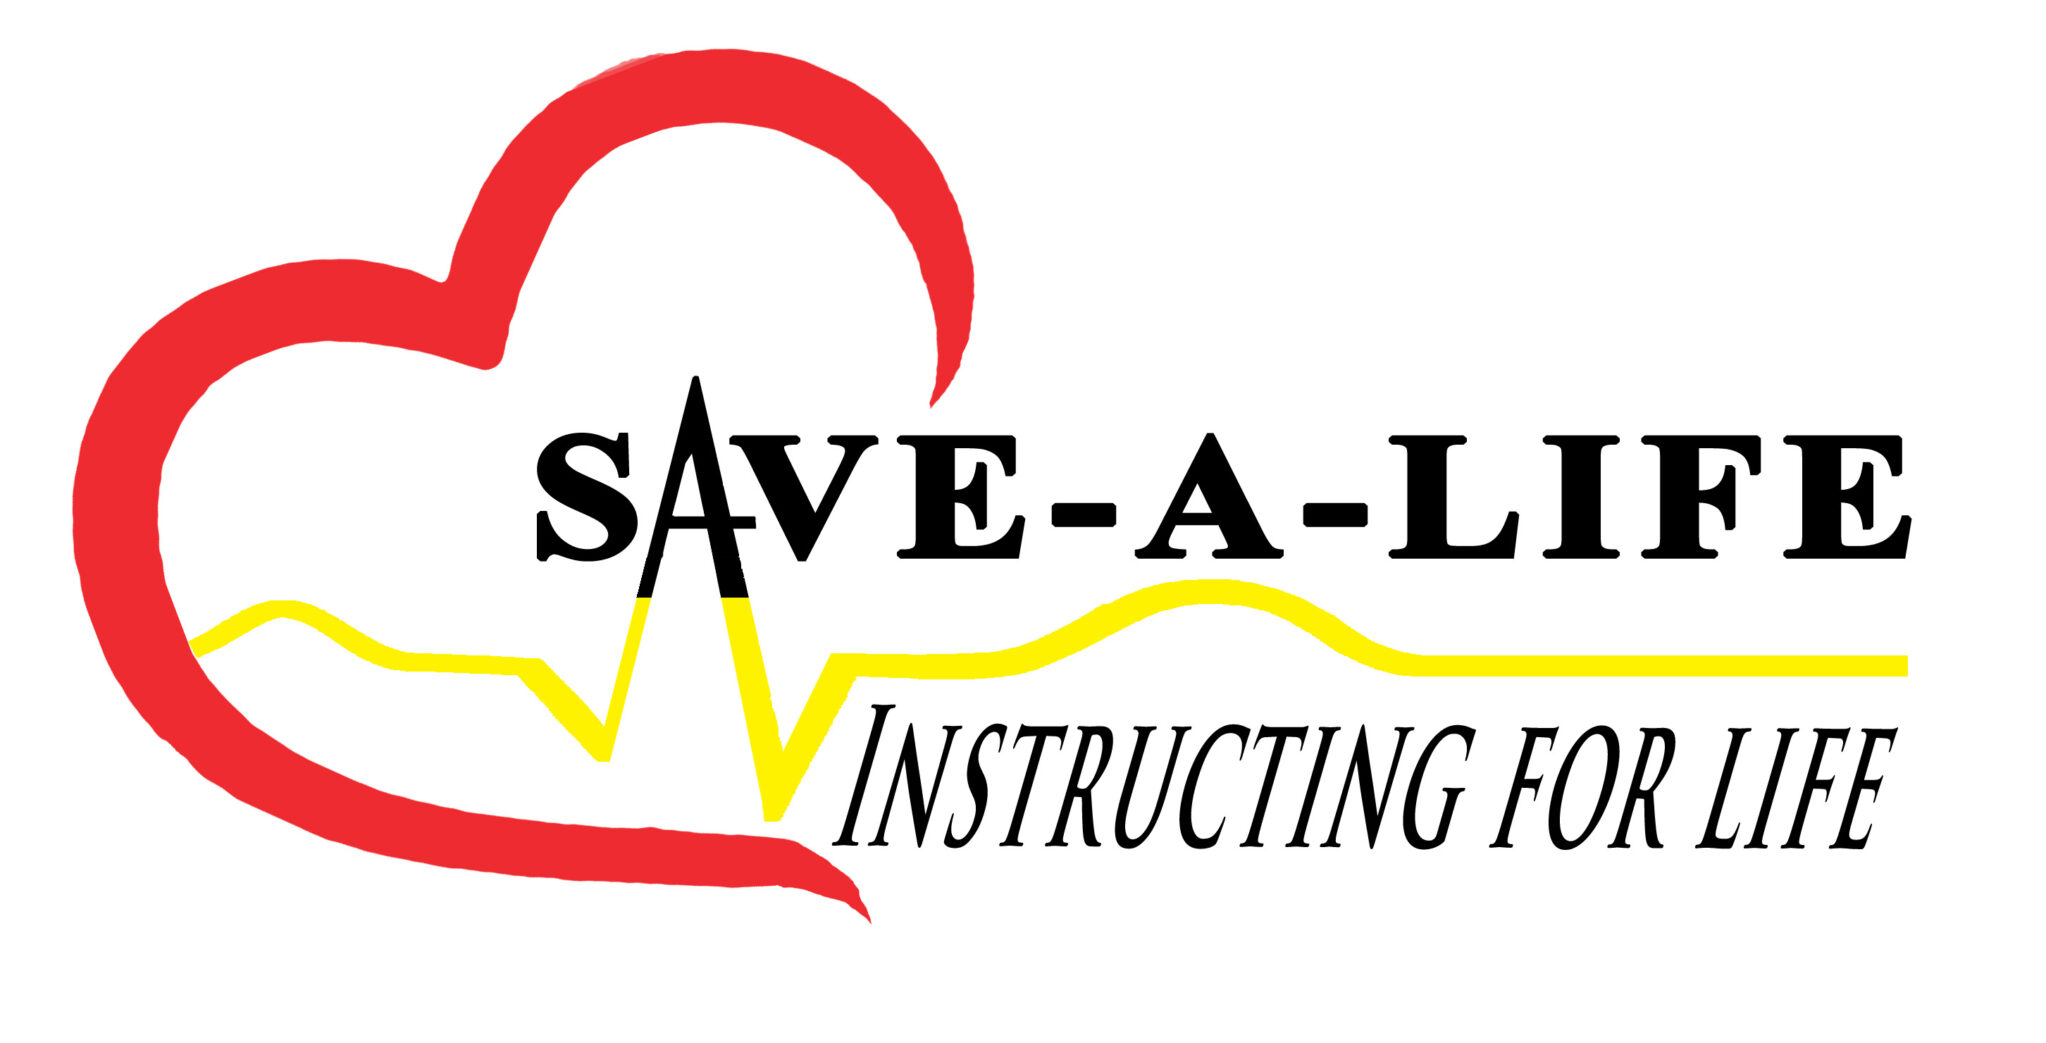 Save-A-Life Instructing for Life